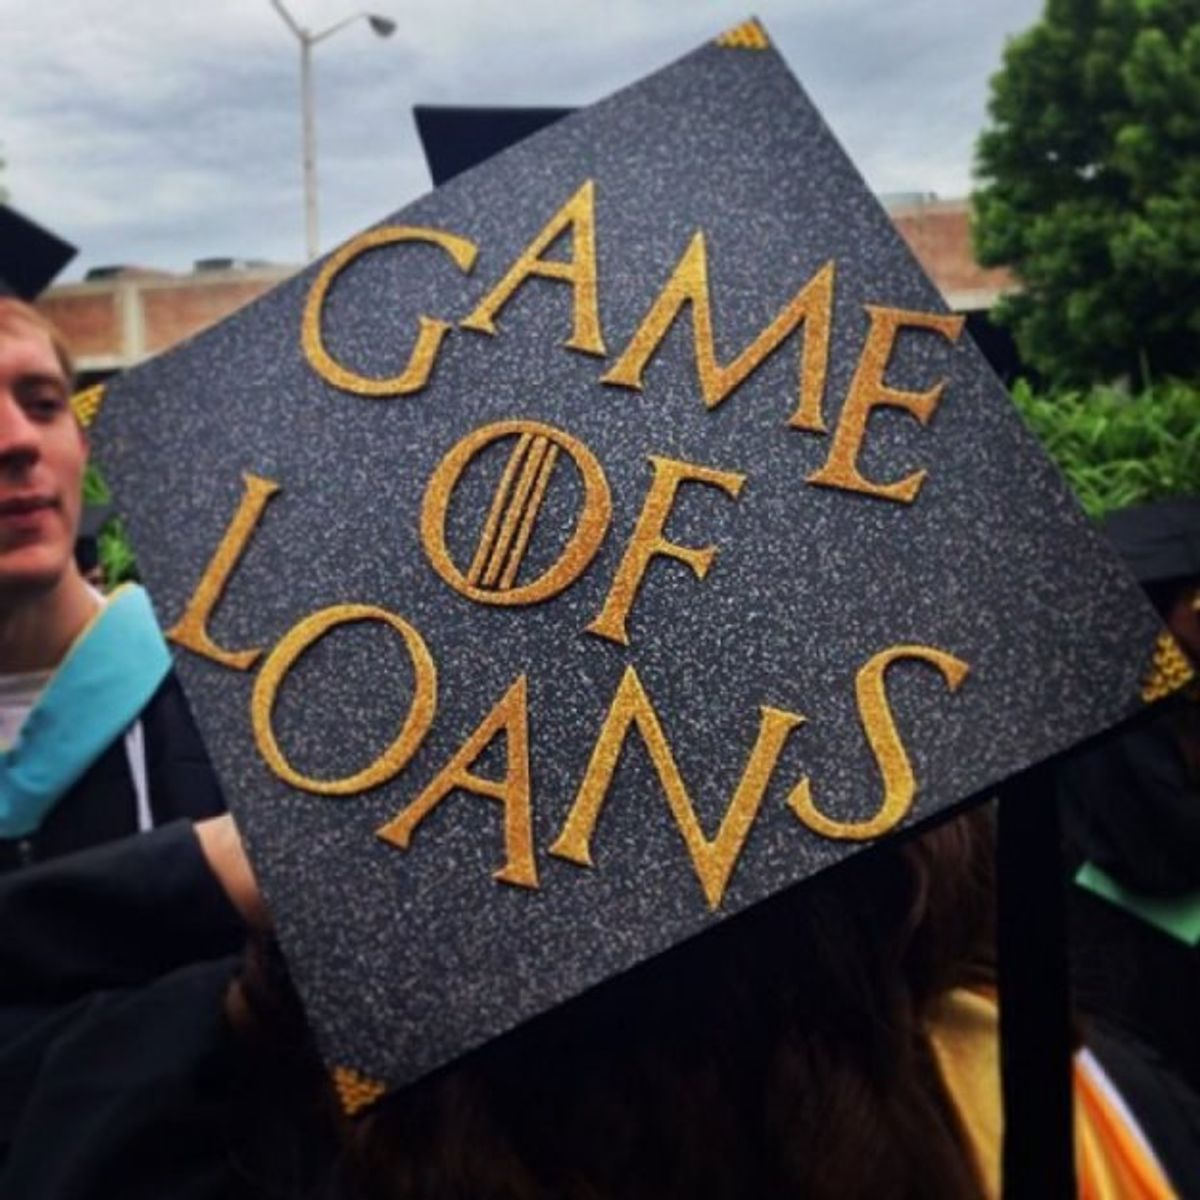 Millennials Are Drowning In a Sea of Student Debt